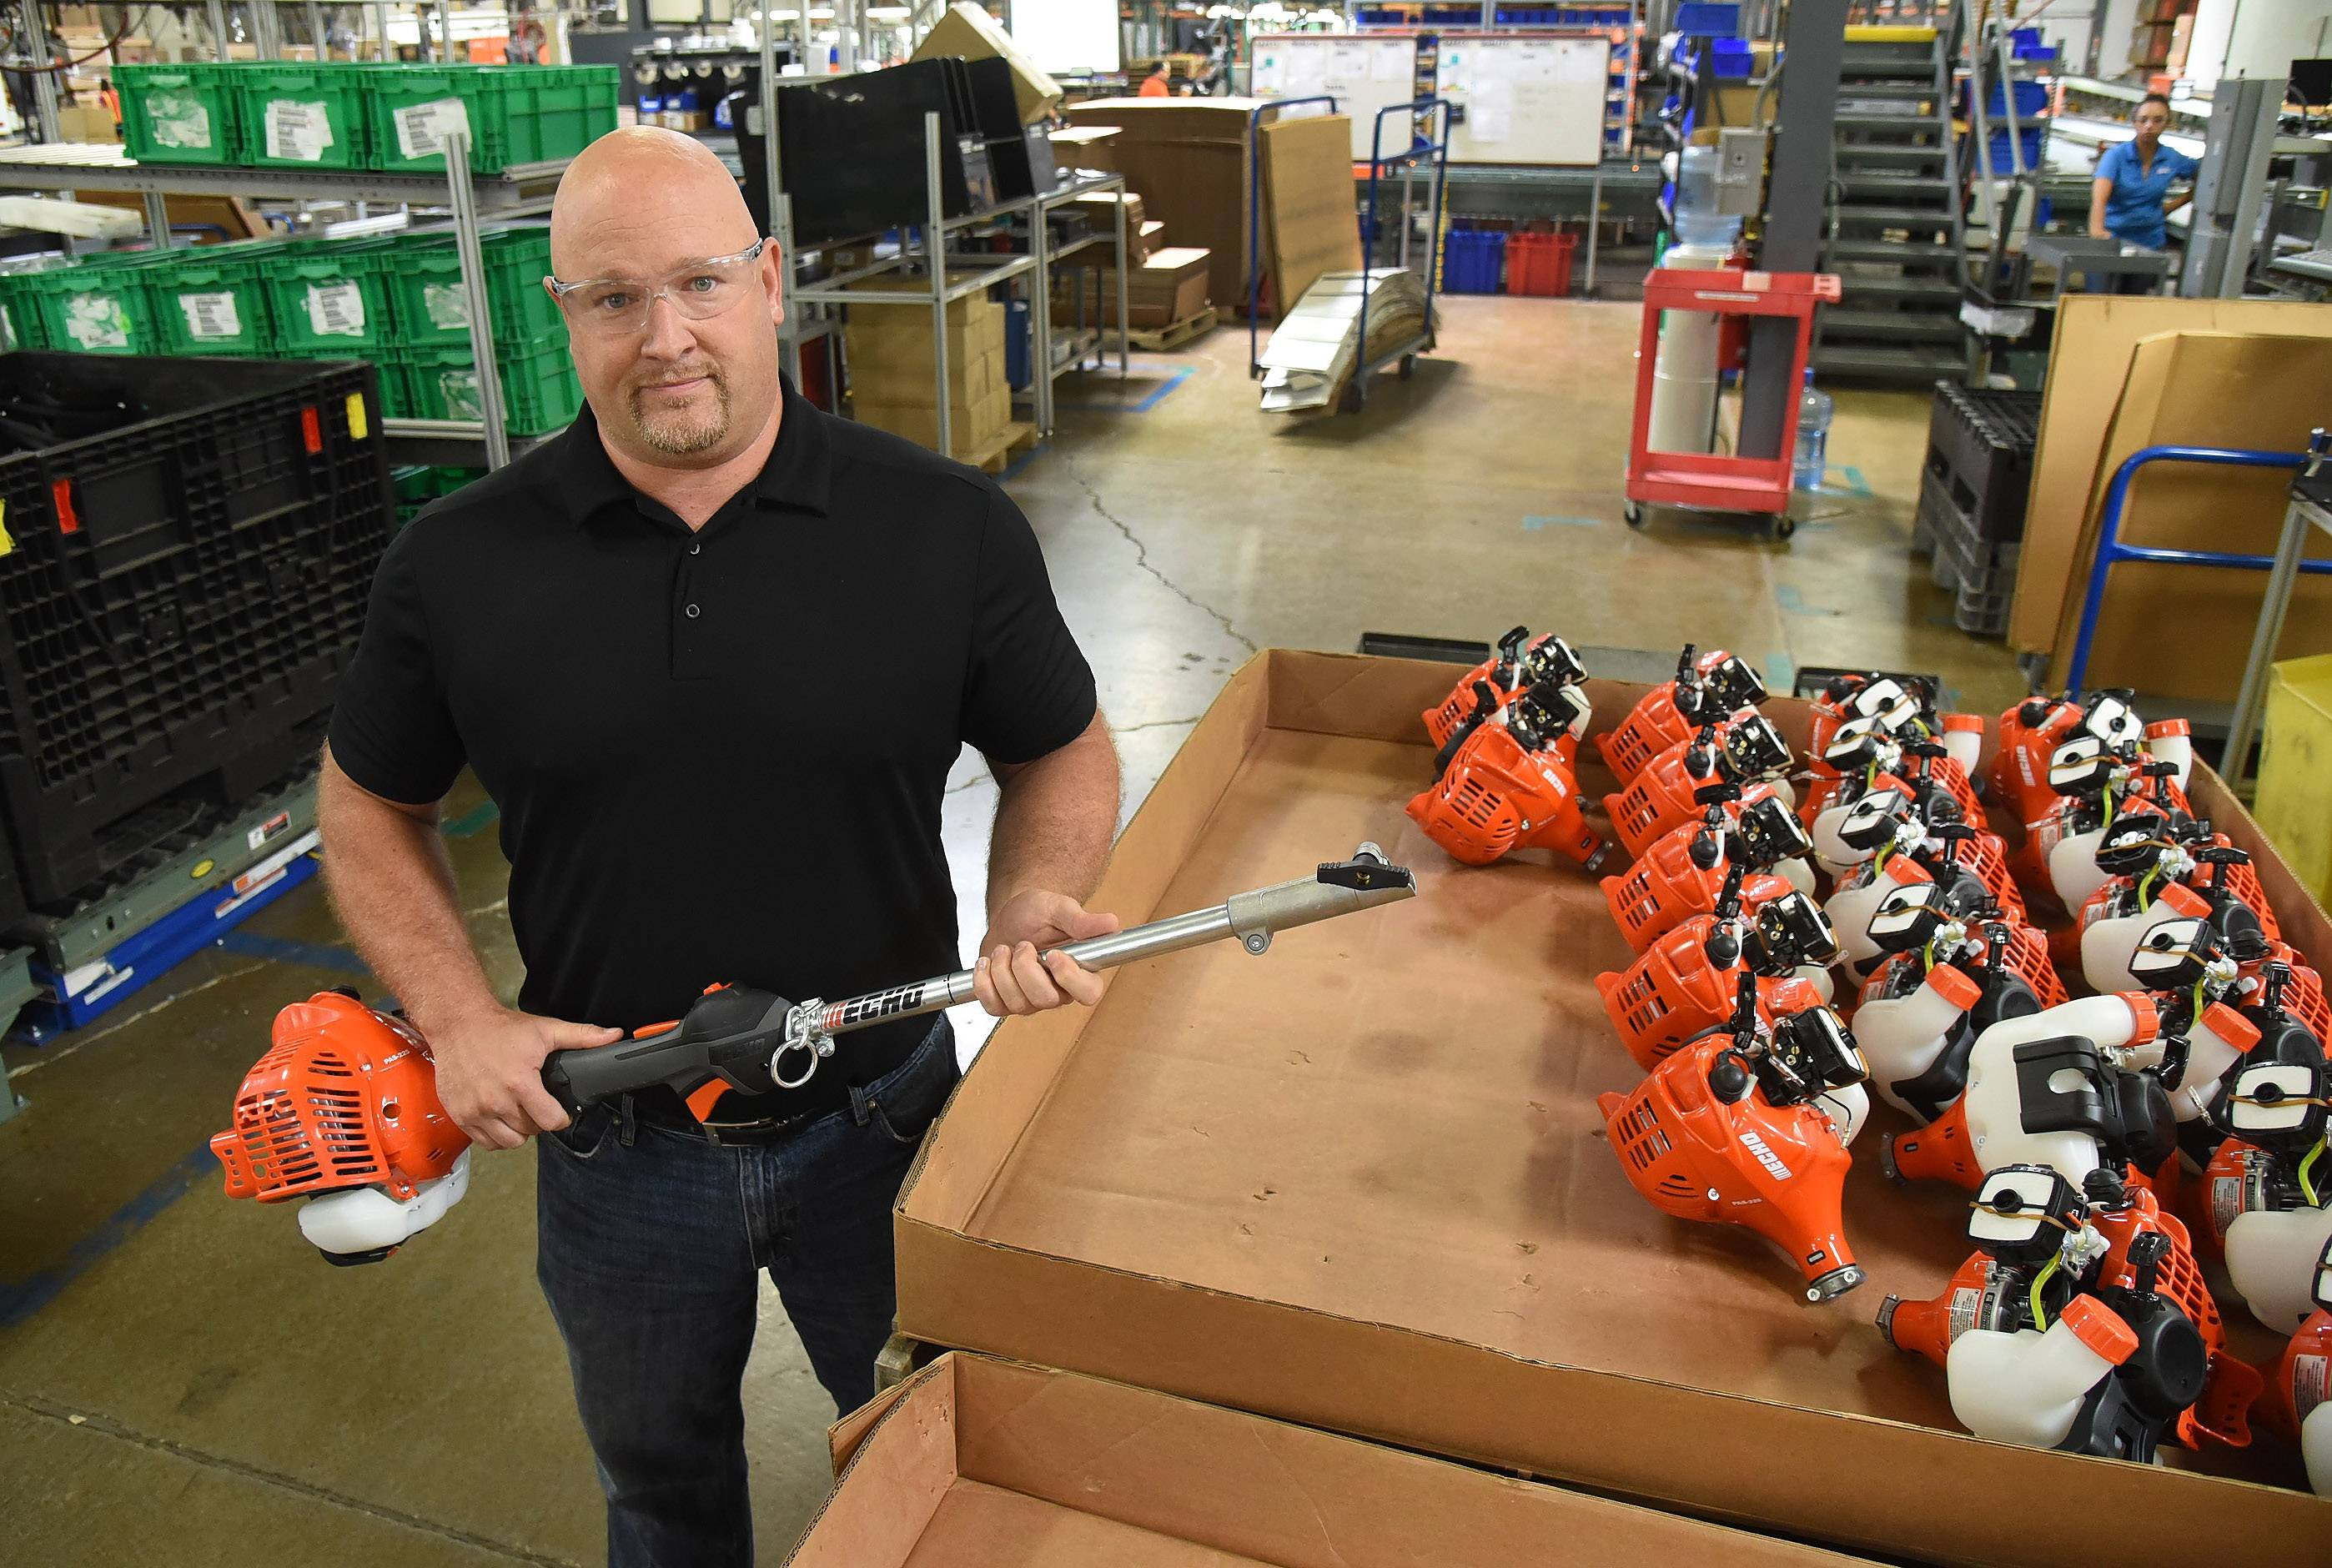 Ryan Ladley, senior director of operations, holds a PAS 225, from the pro attachment series, all purpose trimmer, edger and blower, at Echo Inc. in Lake Zurich.